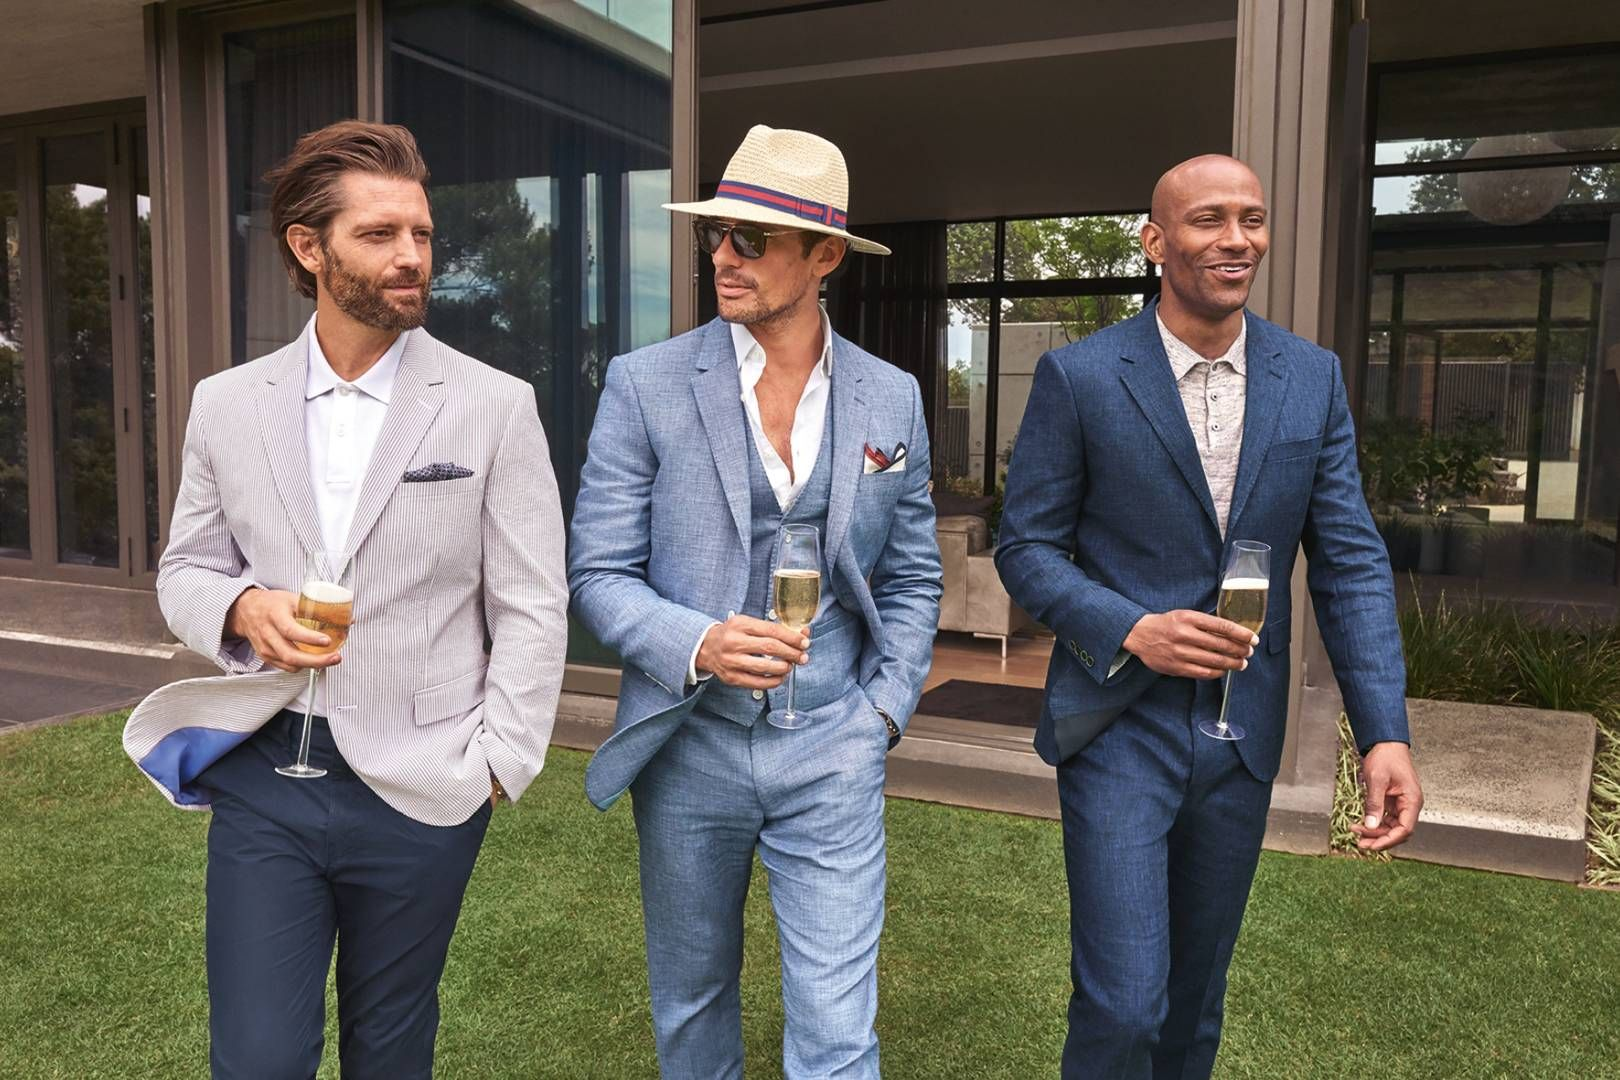 Learn How To Dress For A Wedding With David Gandy Weddingoutfitsformen Weddingoutfit Men Wedding Outfit Men Summer Wedding Attire Guest Wedding Attire Guest